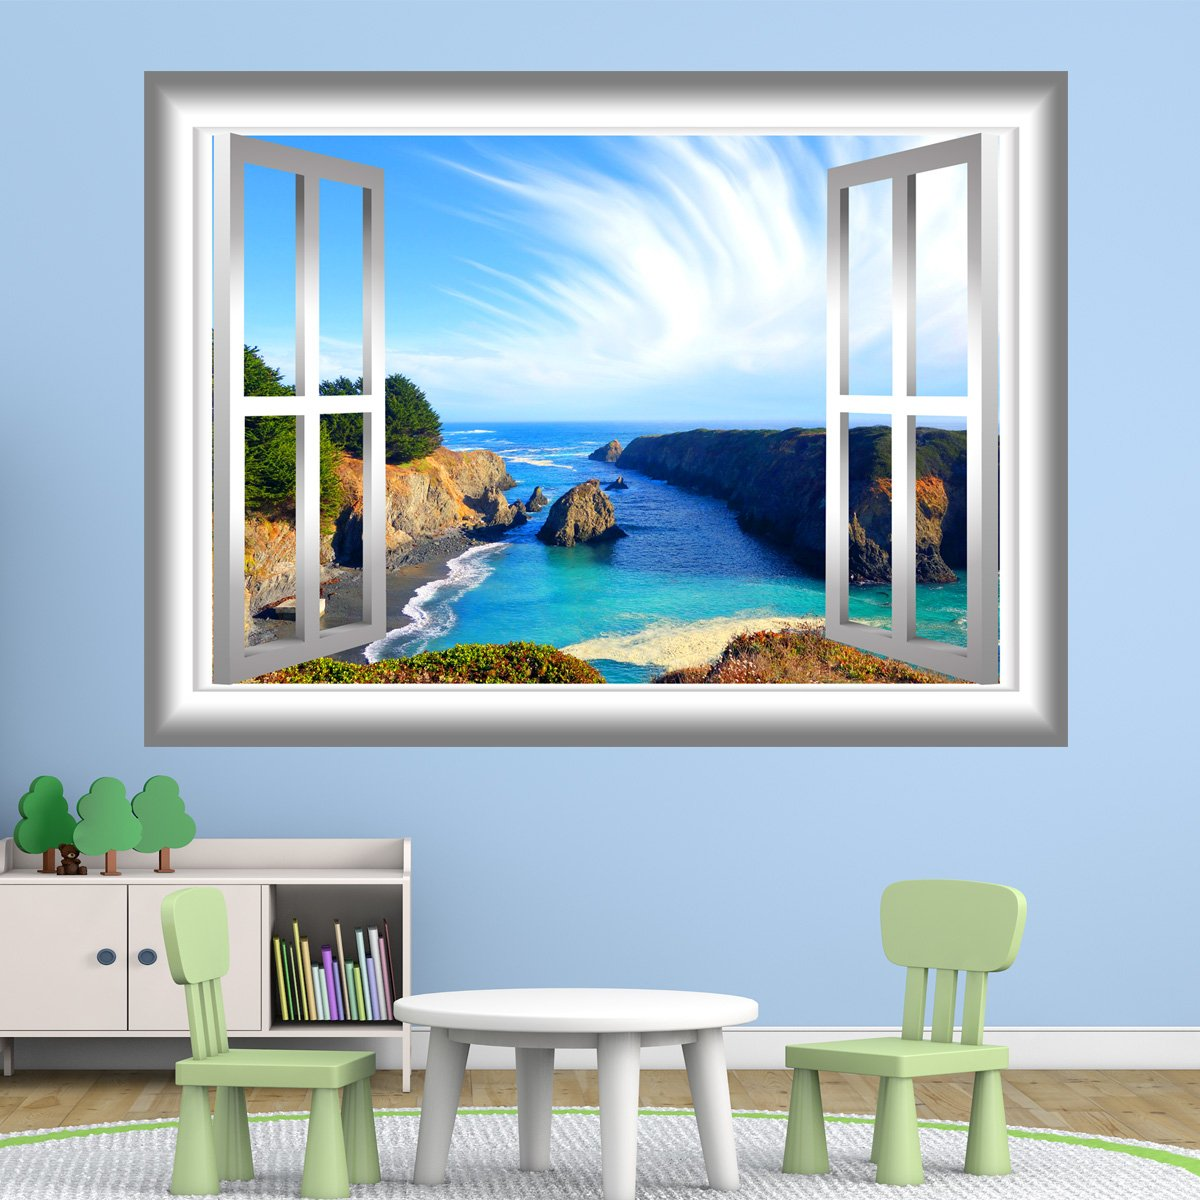 VWAQ Scenic Ocean View Peel and Stick Window Frame Vinyl Wall Decal